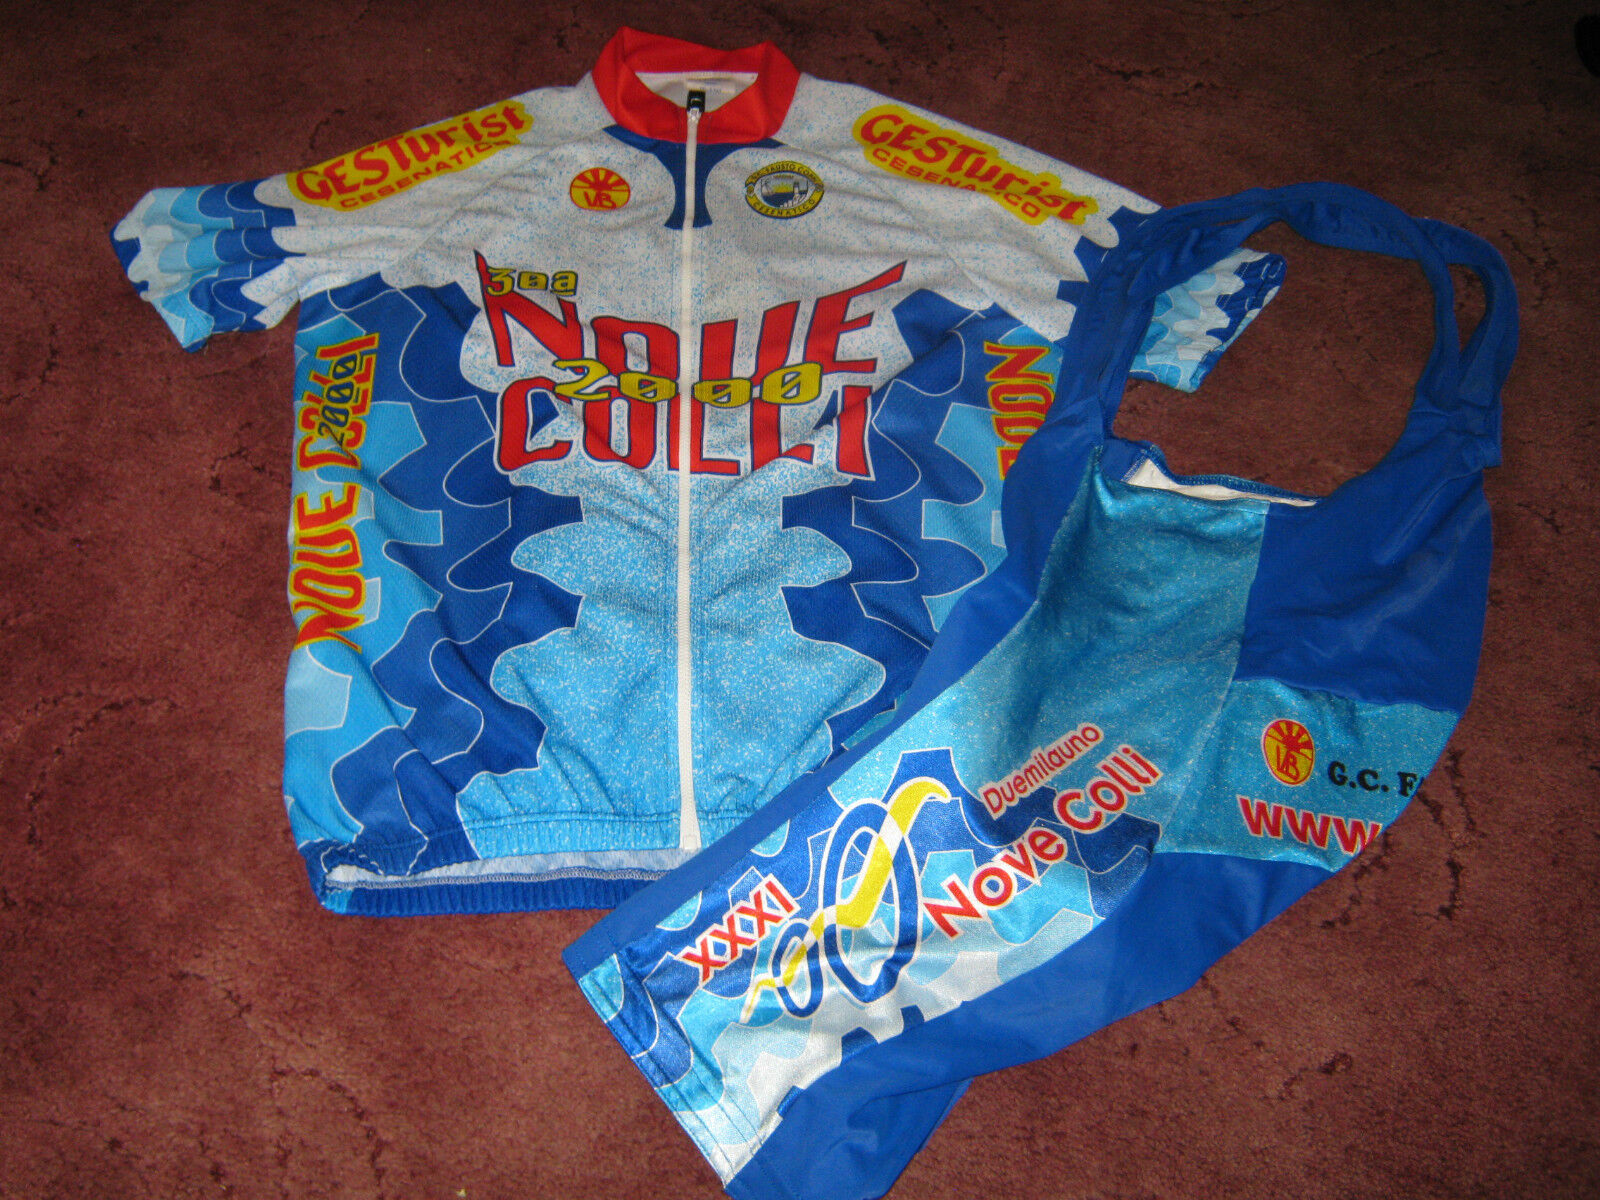 GC FAUSTO COPPI CESENATICO NOVE COLLI V&B ITALIAN CYCLING JERSEY & BIB SHORTS XL